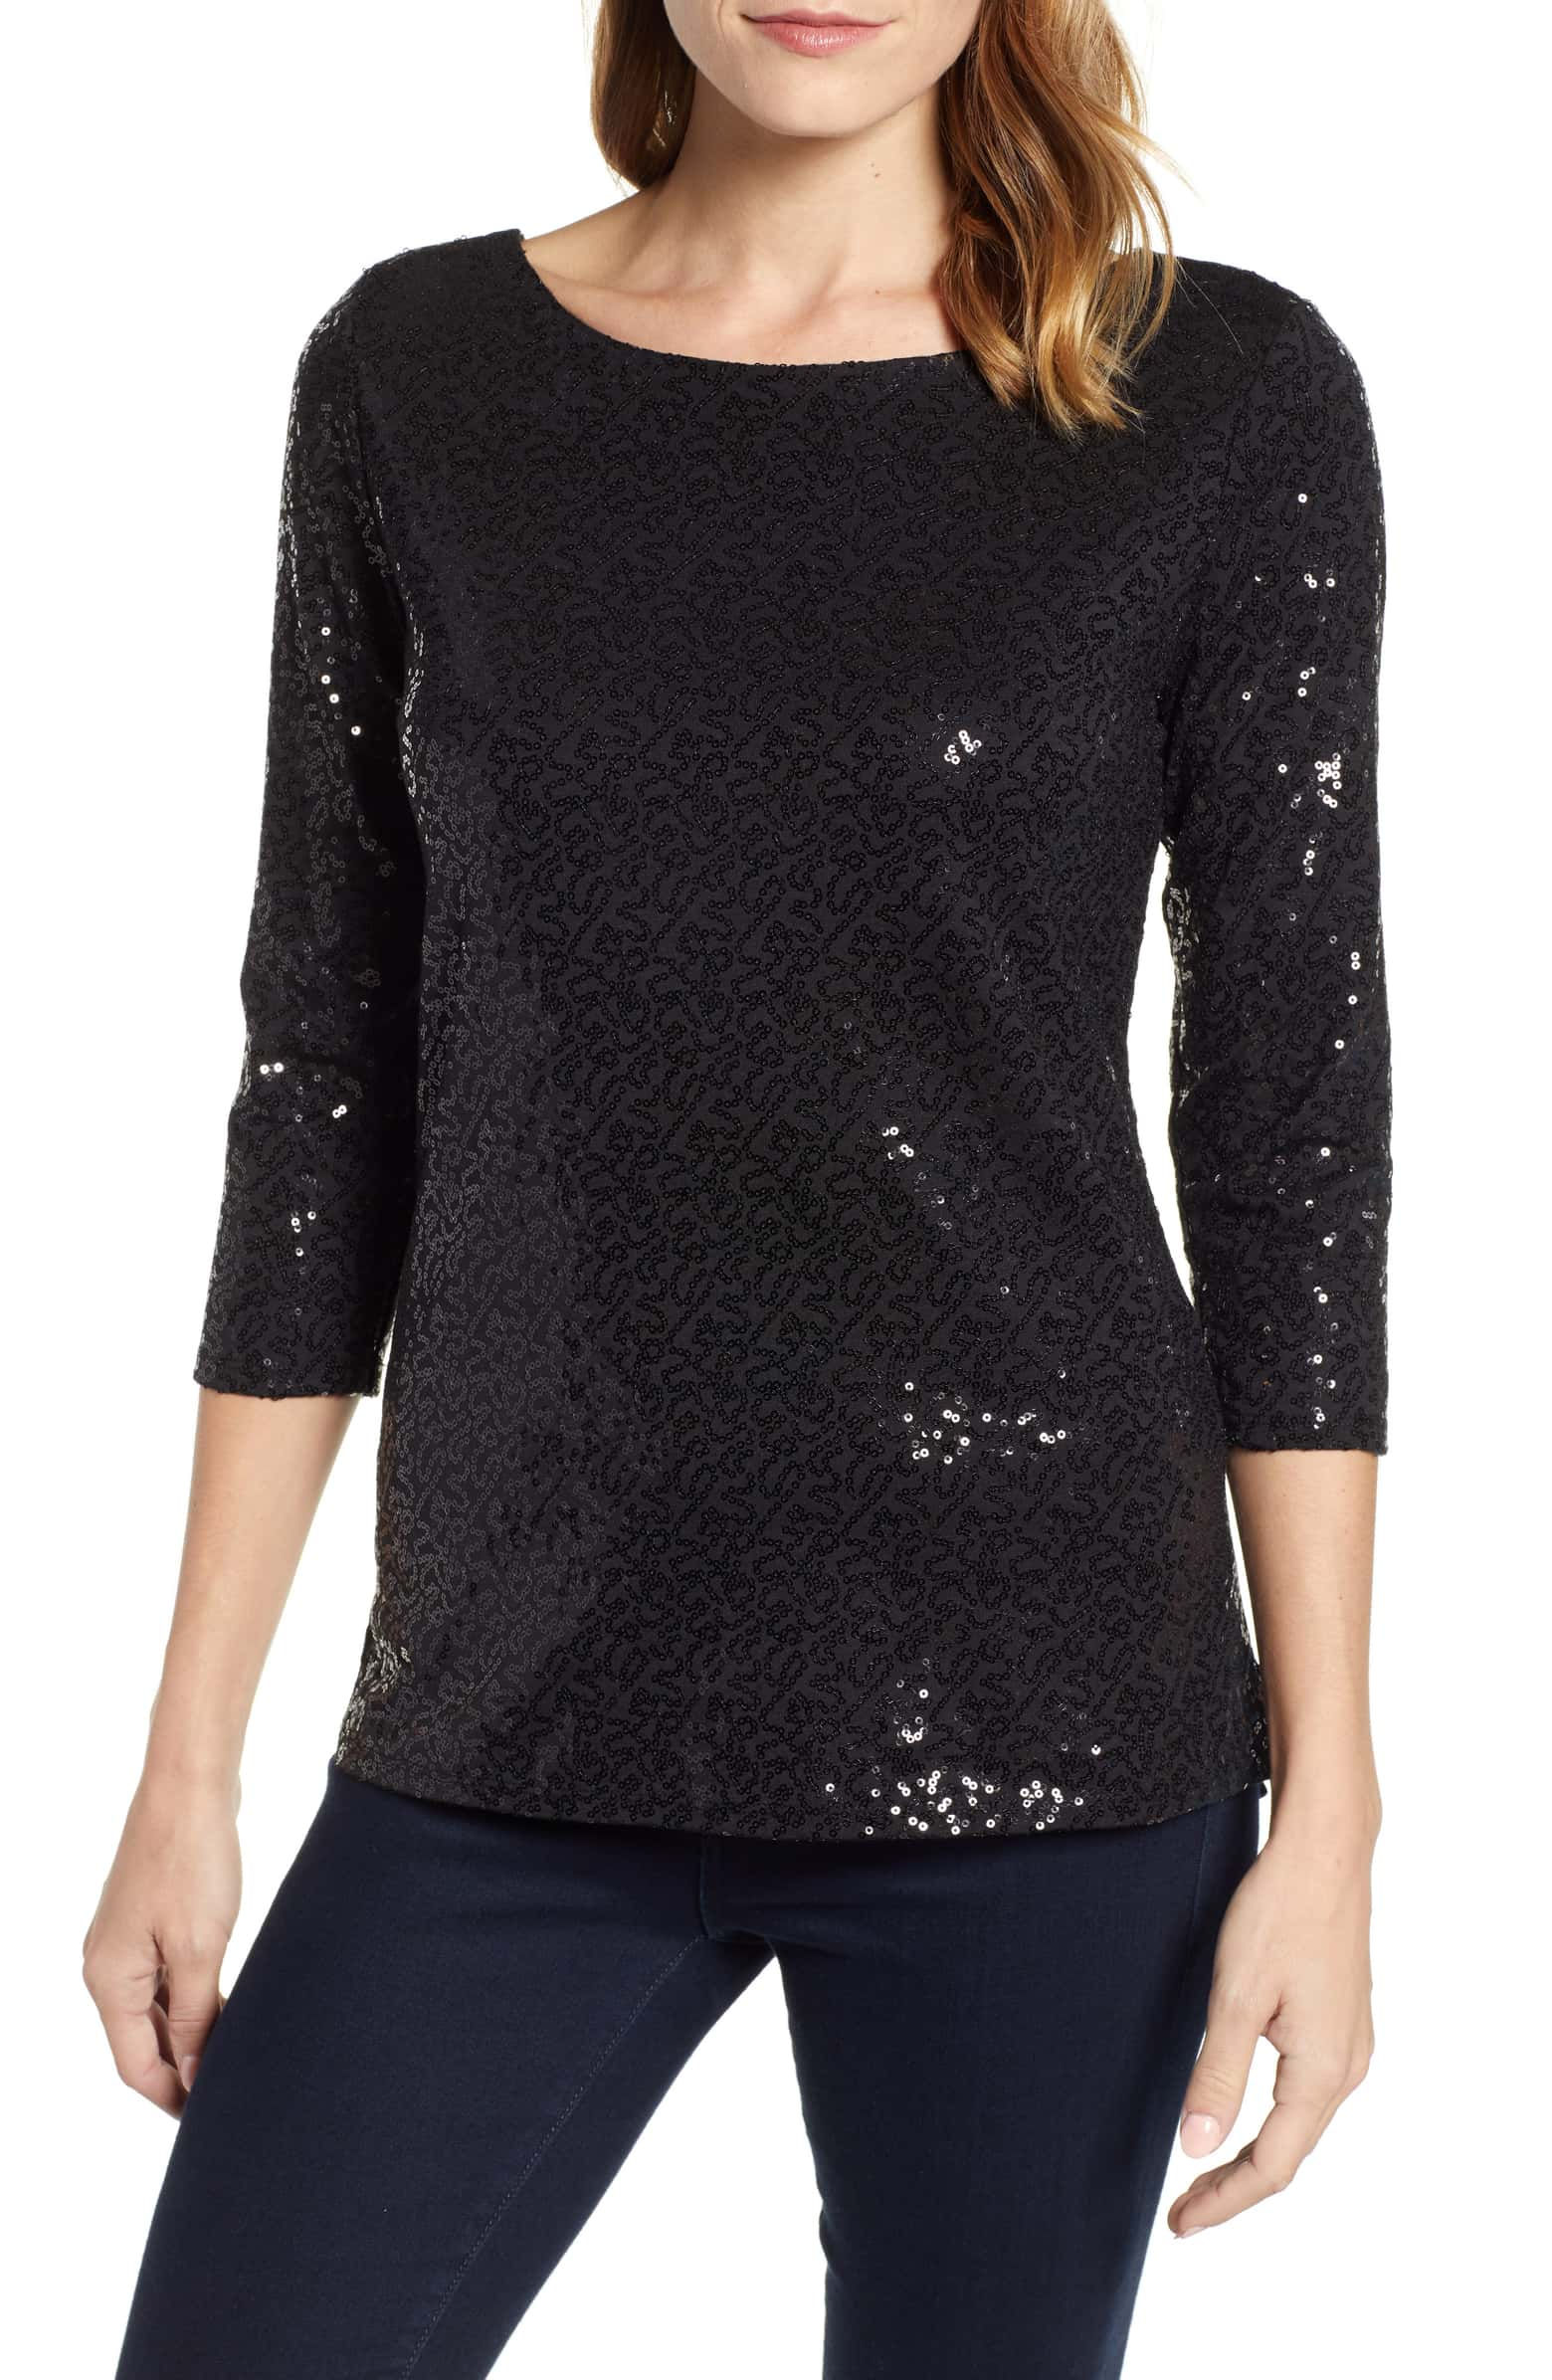 (New with Tags) Nordstrom Gibson Sequined Top, Size Small